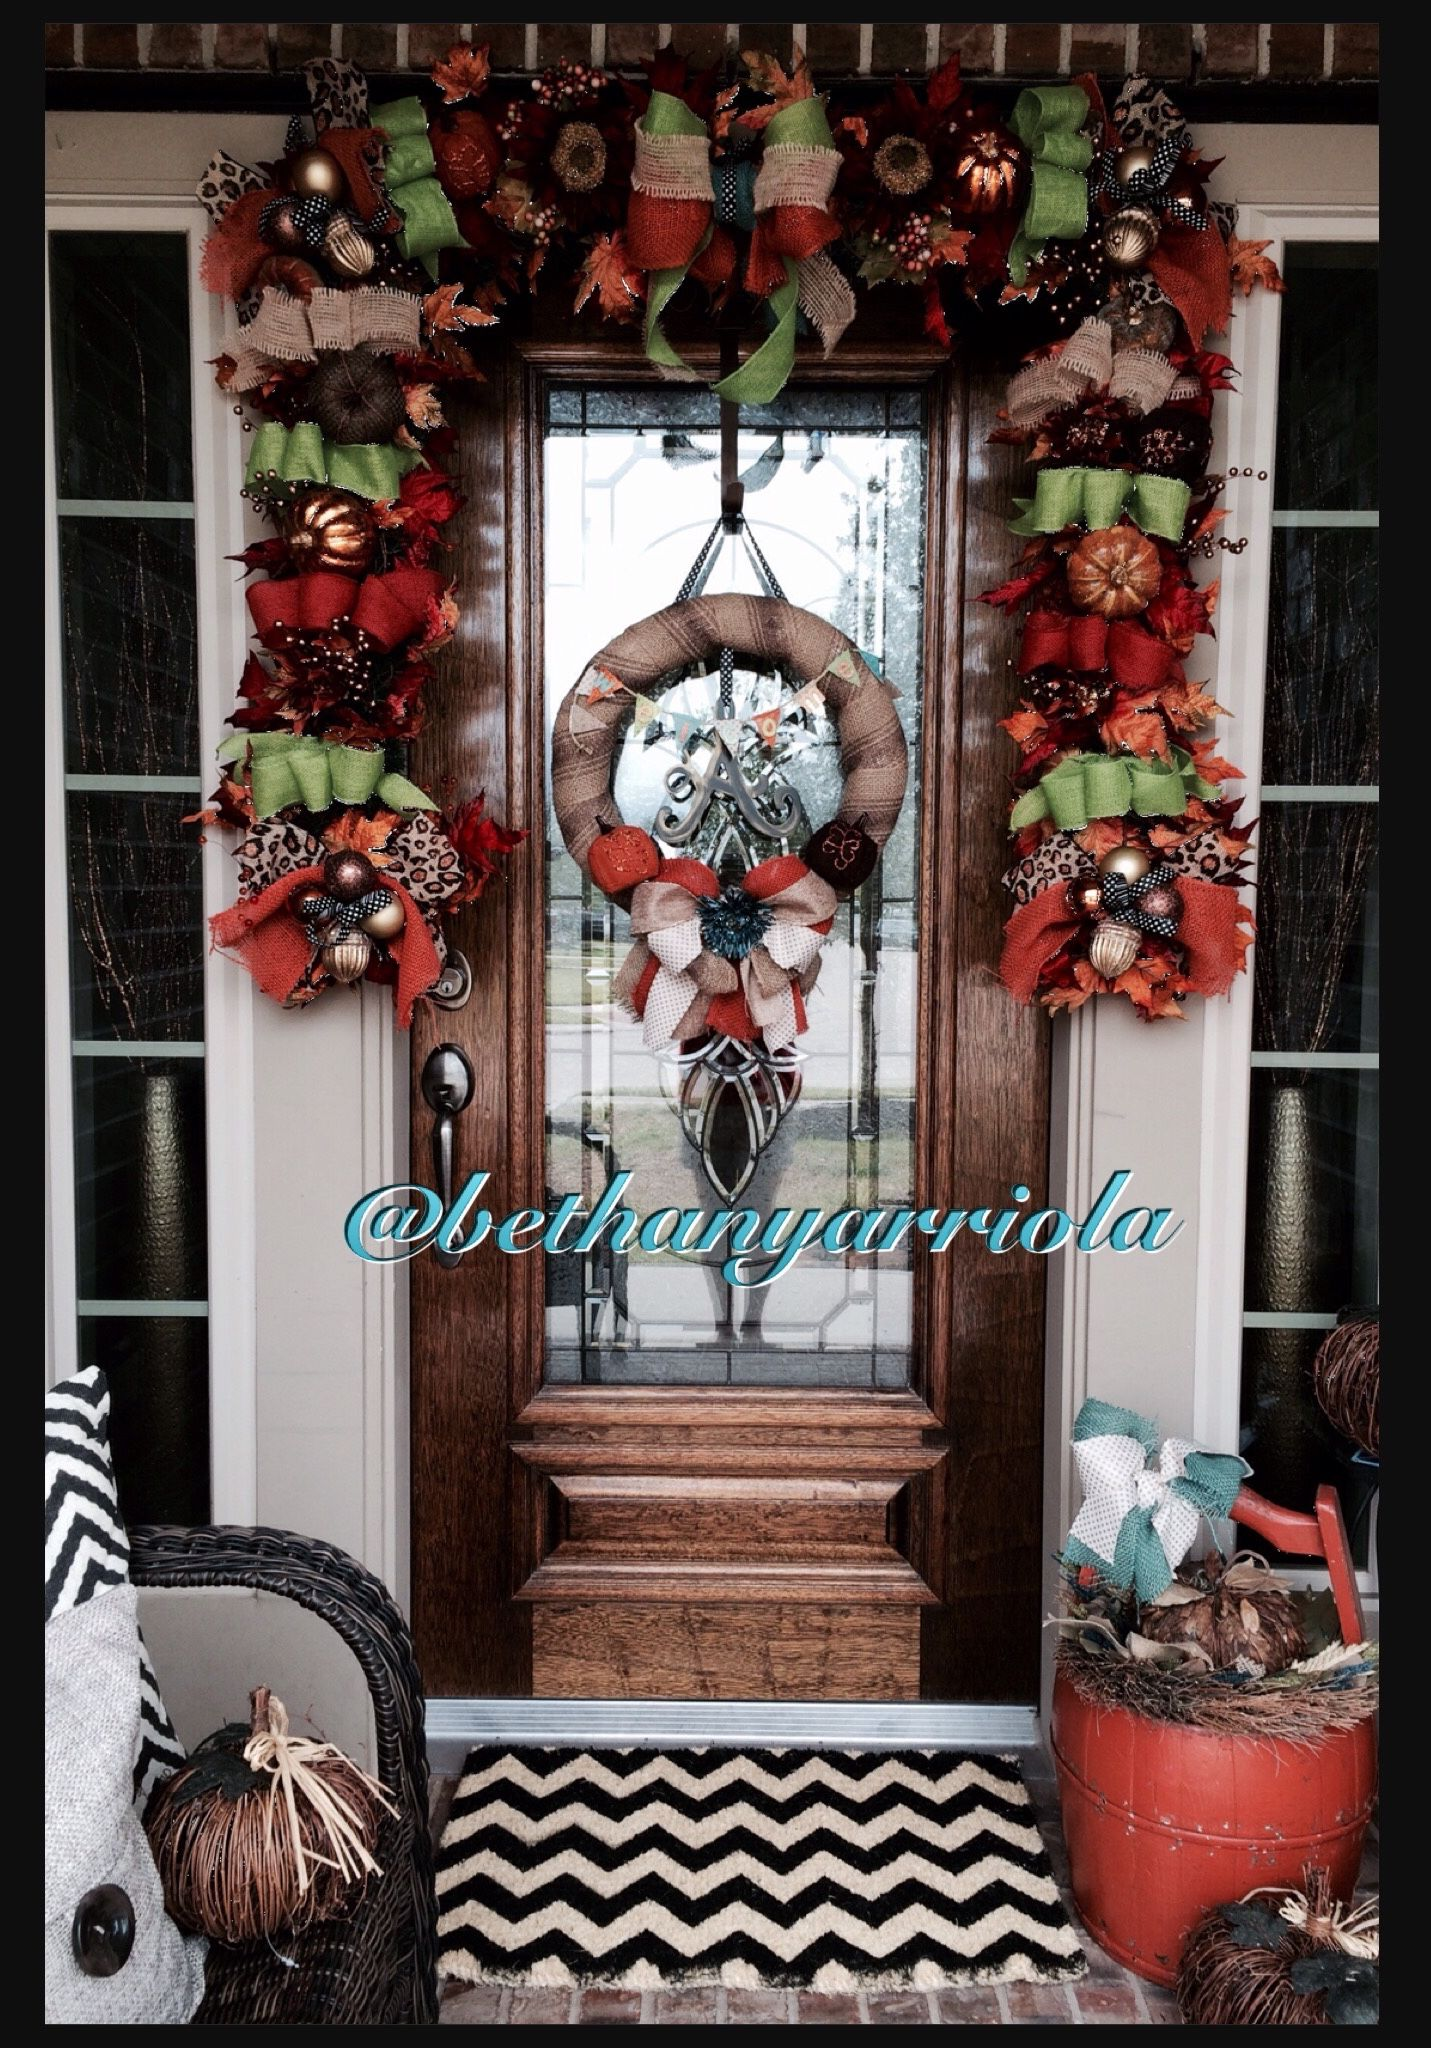 Fall 2014 burlap wreath and garland decor for my front door - halloween window decor